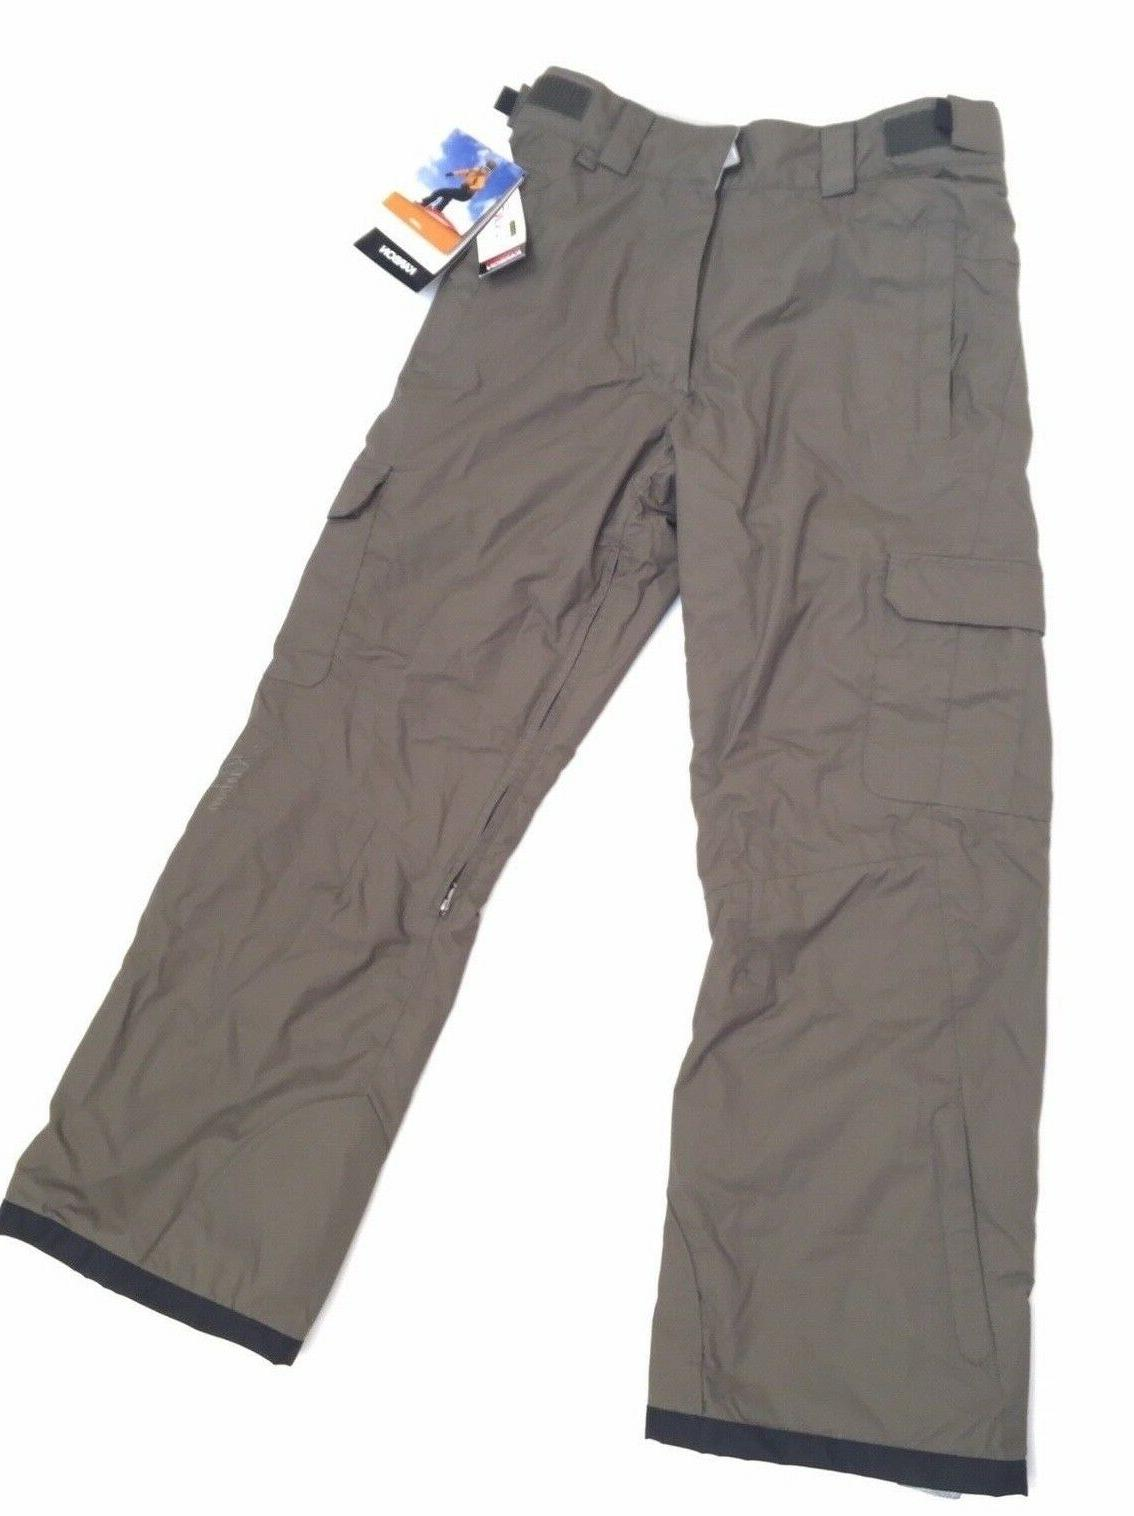 KARBON COMPETITION WEAR Junior SNOW/SKI PANTS youth SIZE